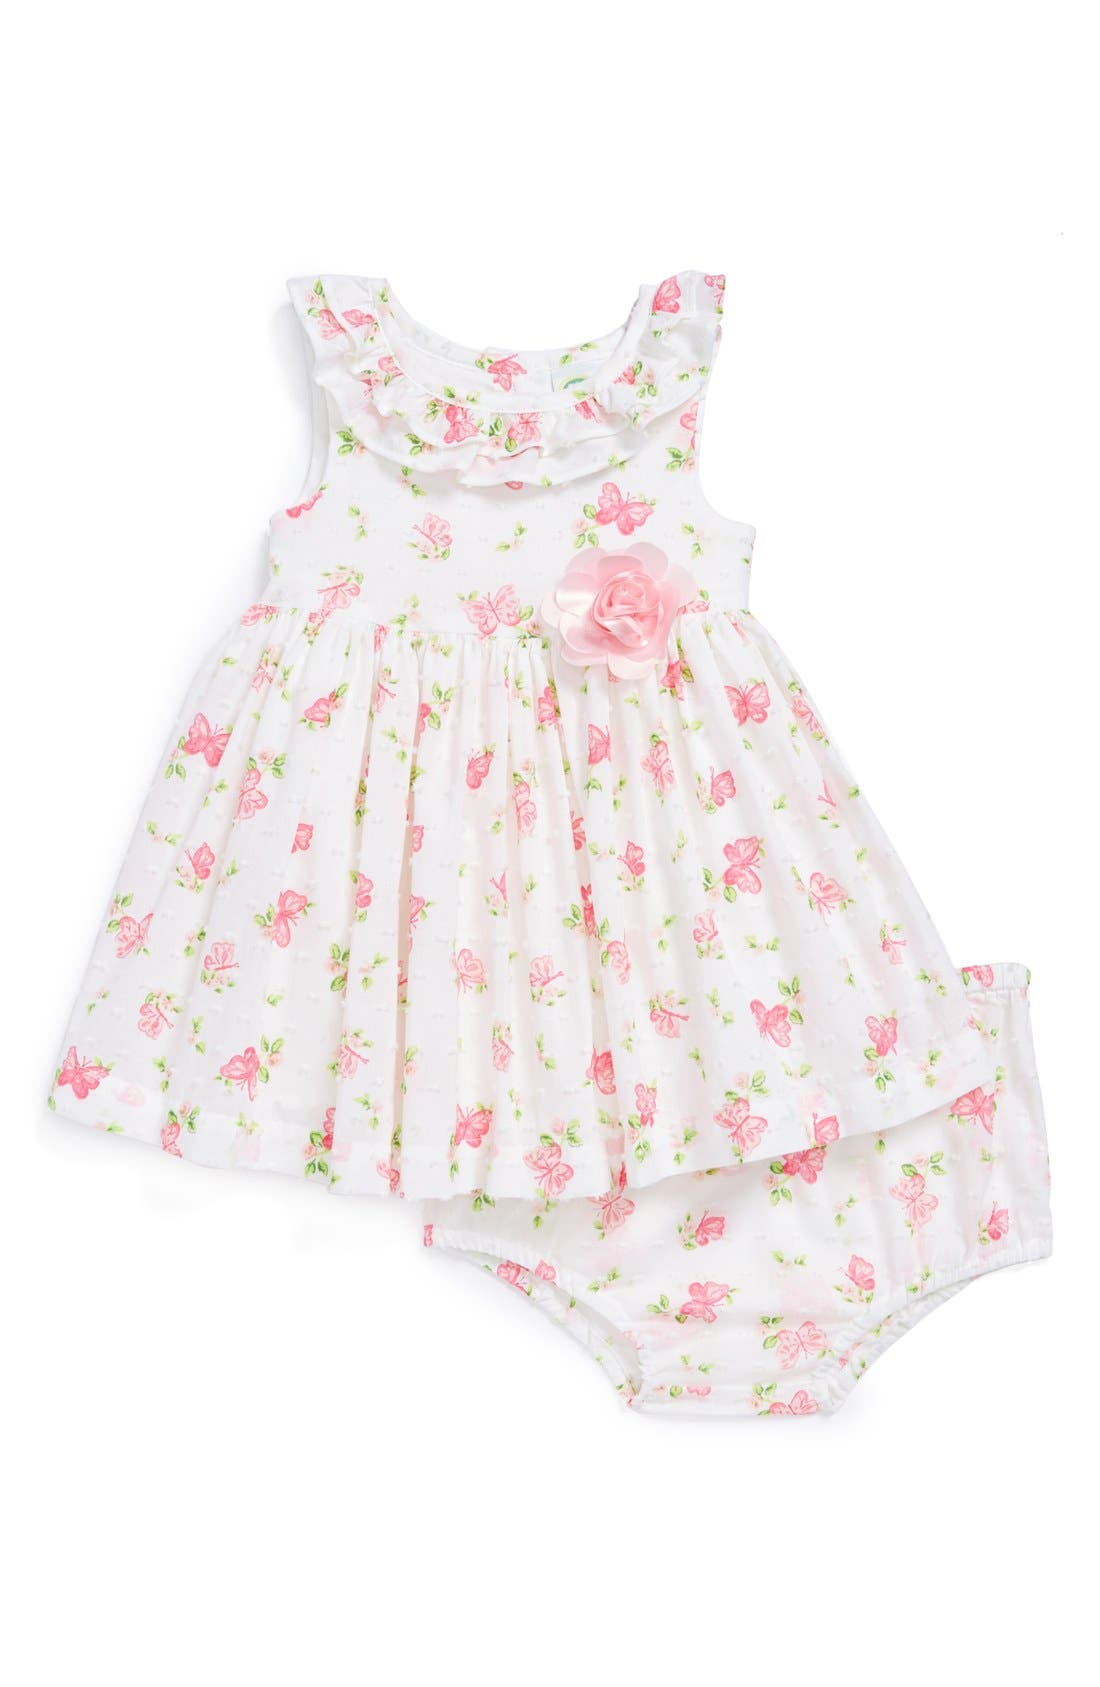 Alternate Image 1 Selected - Little Me 'Butterfly' Dress & Bloomers (Baby Girls)